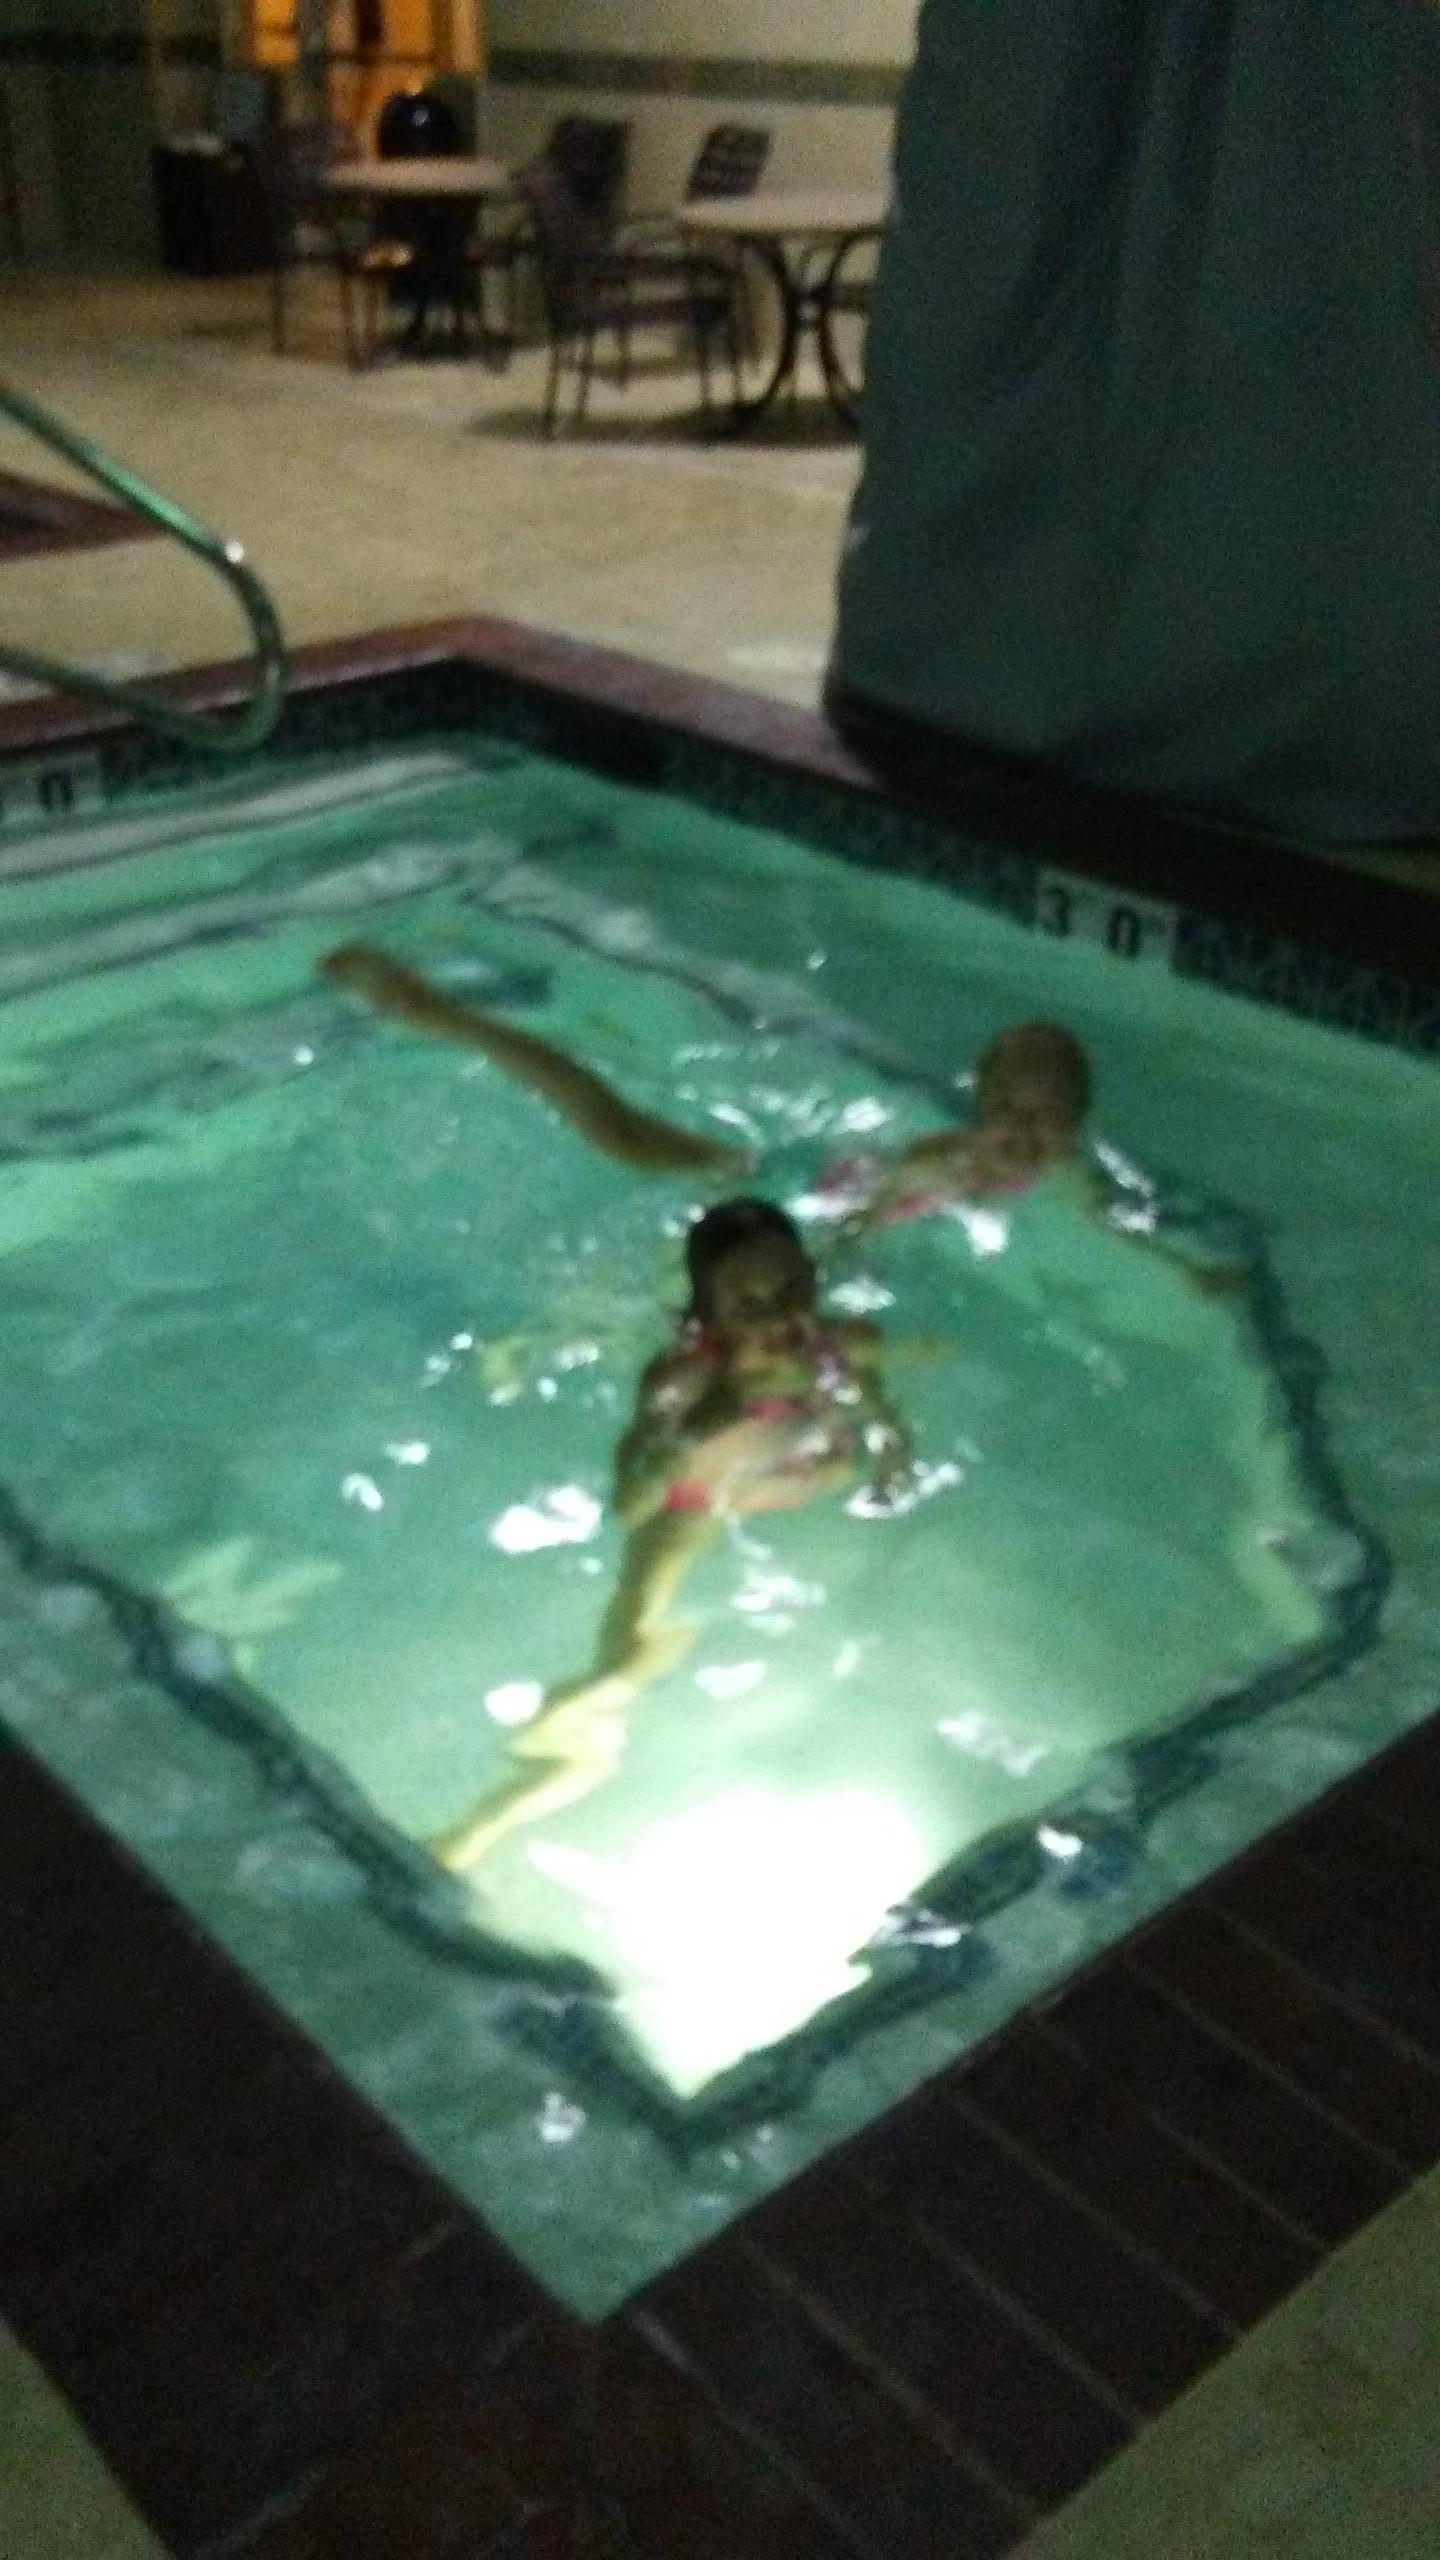 My sister and niece came to visit and swim also